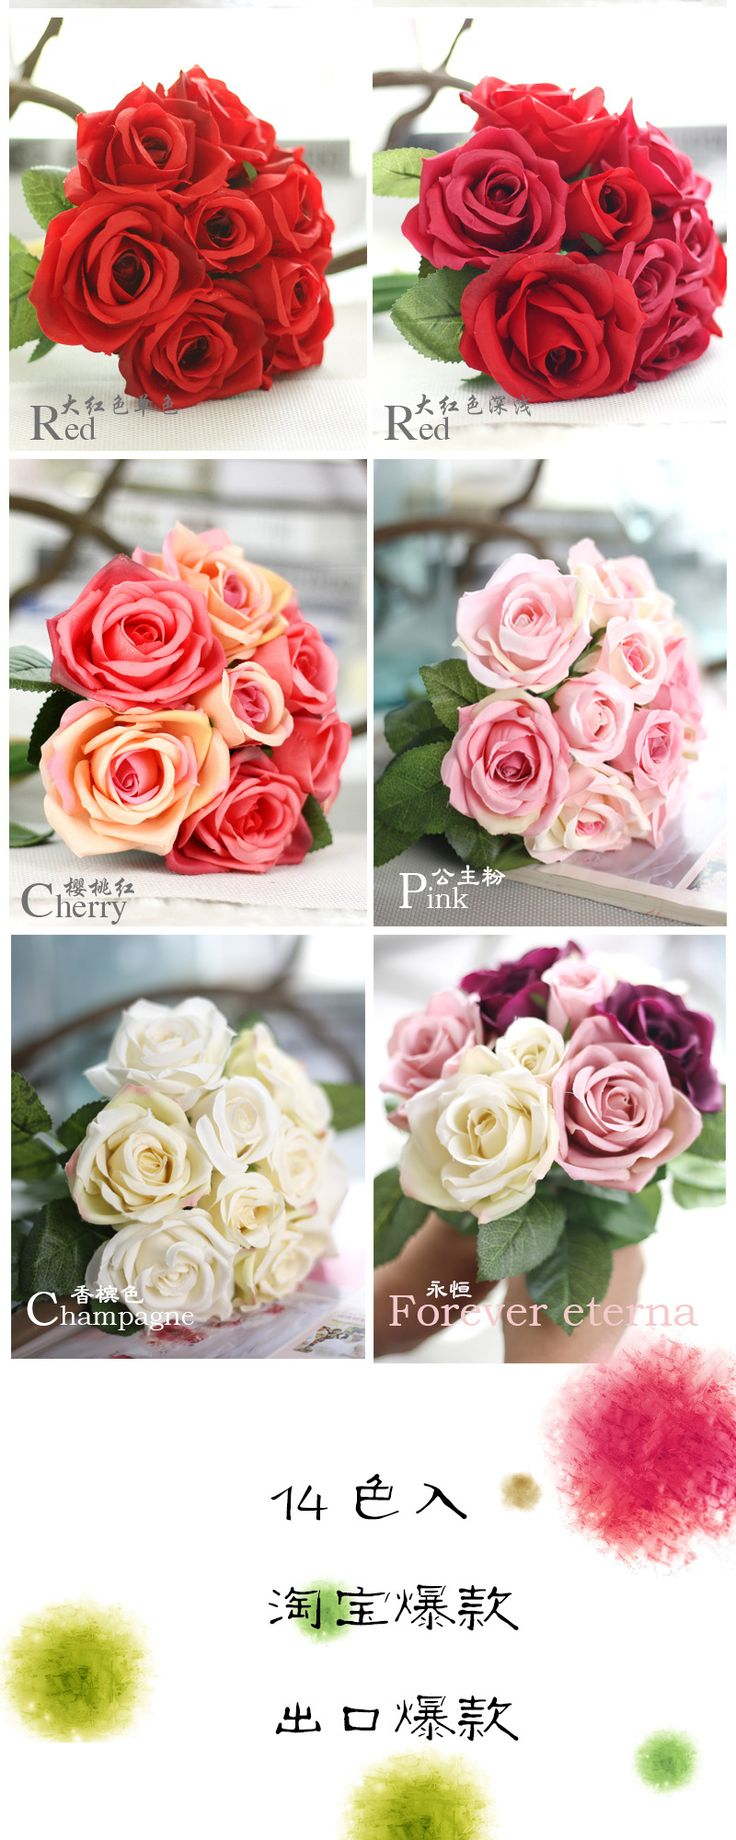 45 best silk flower images on pinterest artificial flowers art artificial flowerartificial flowers for decoration artificial flower arrangements artificial flowers bulk mightylinksfo